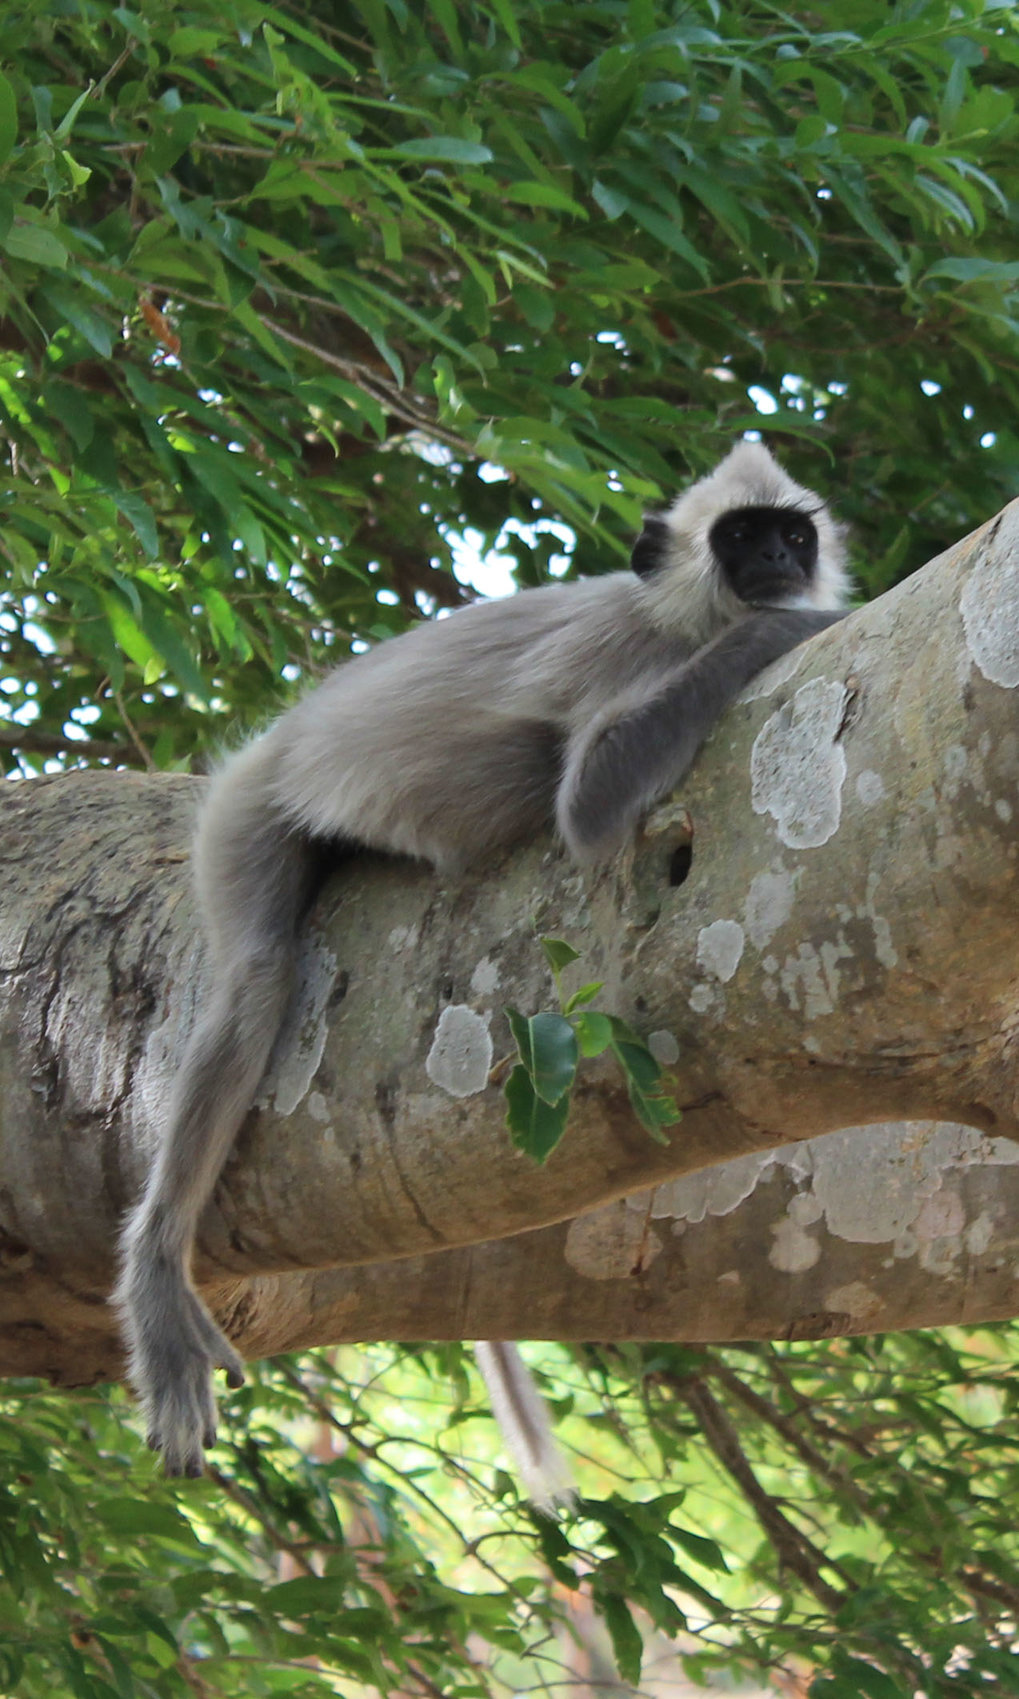 A new paper published in the American Journal of Primatology provides a comprehensive plant reference dataset for a forest habitat of three primate species in Sri Lanka.